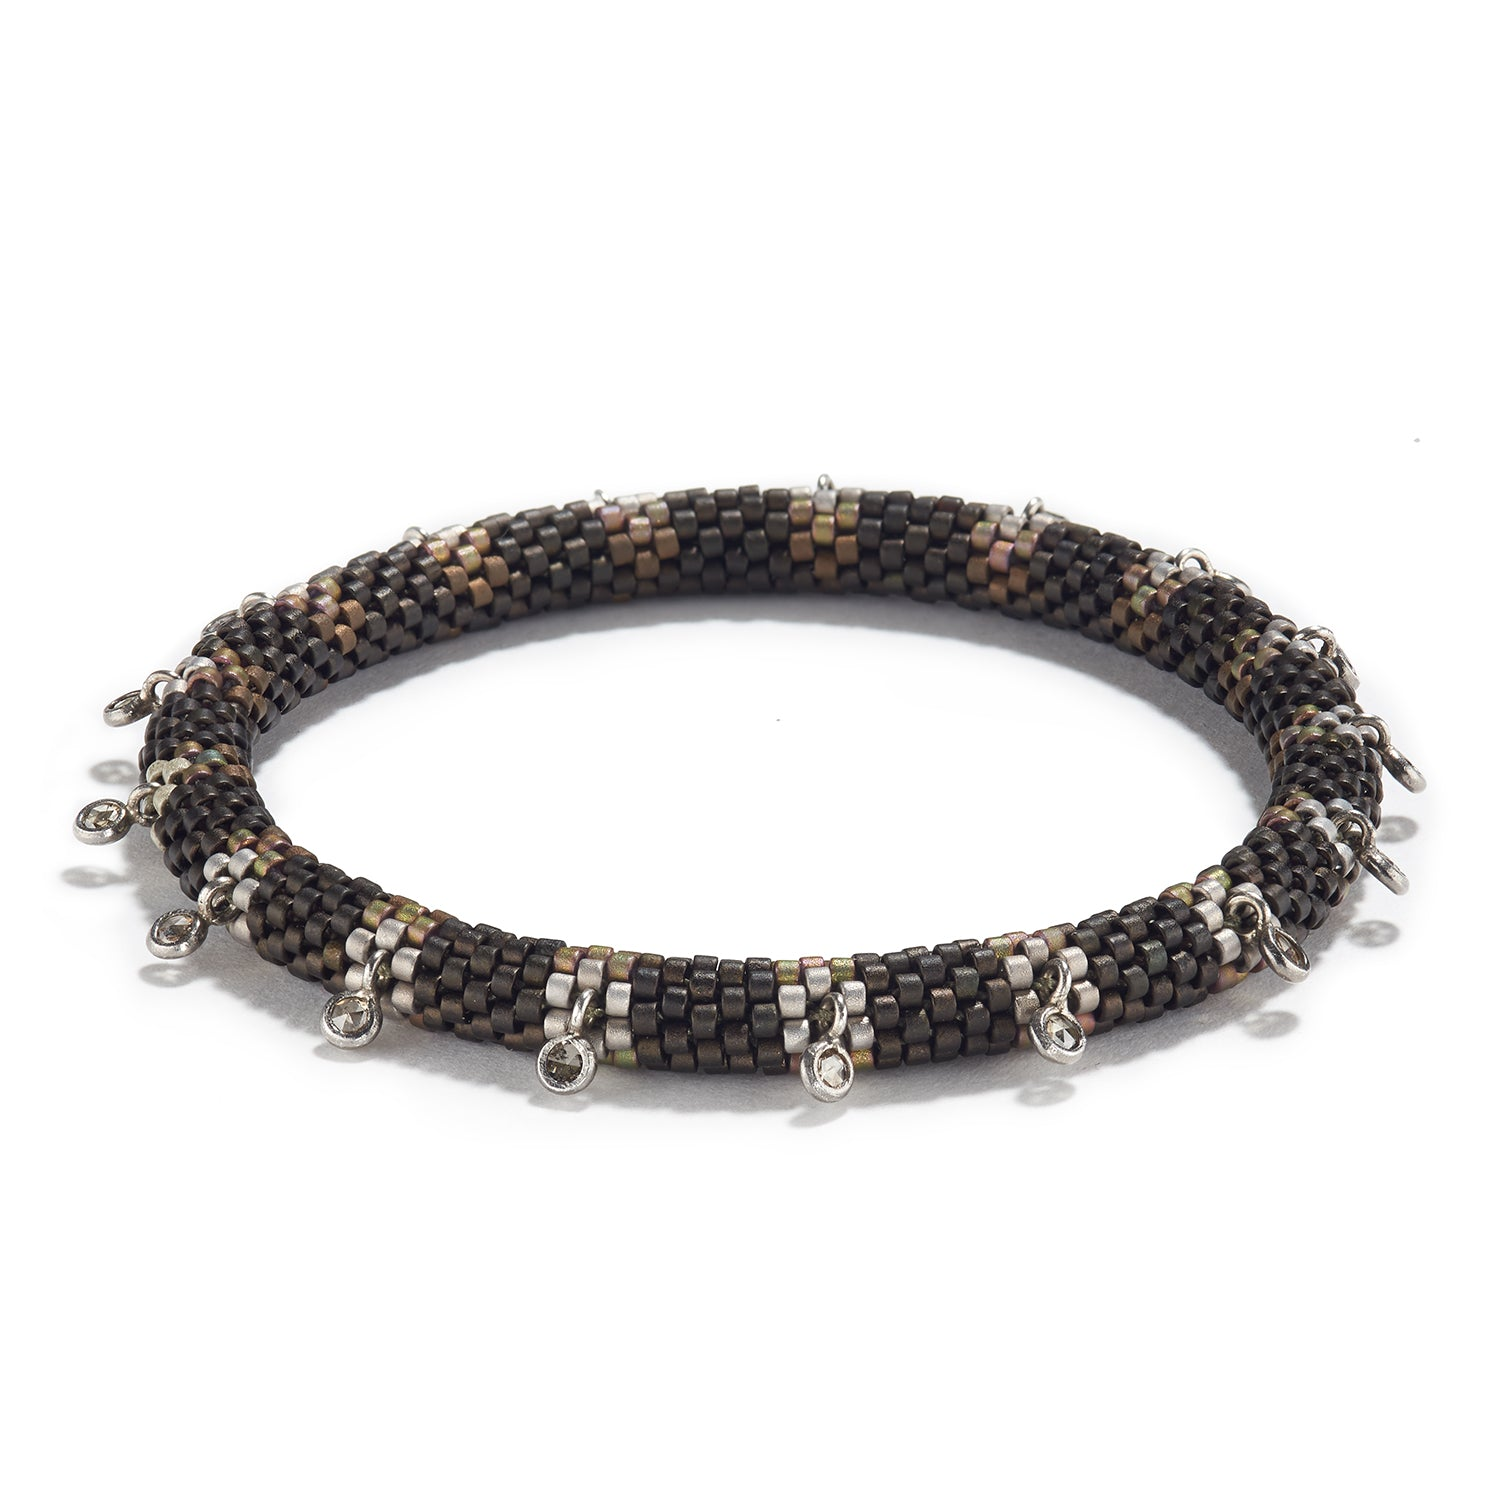 'Pools of Light' Bracelet with Diamonds